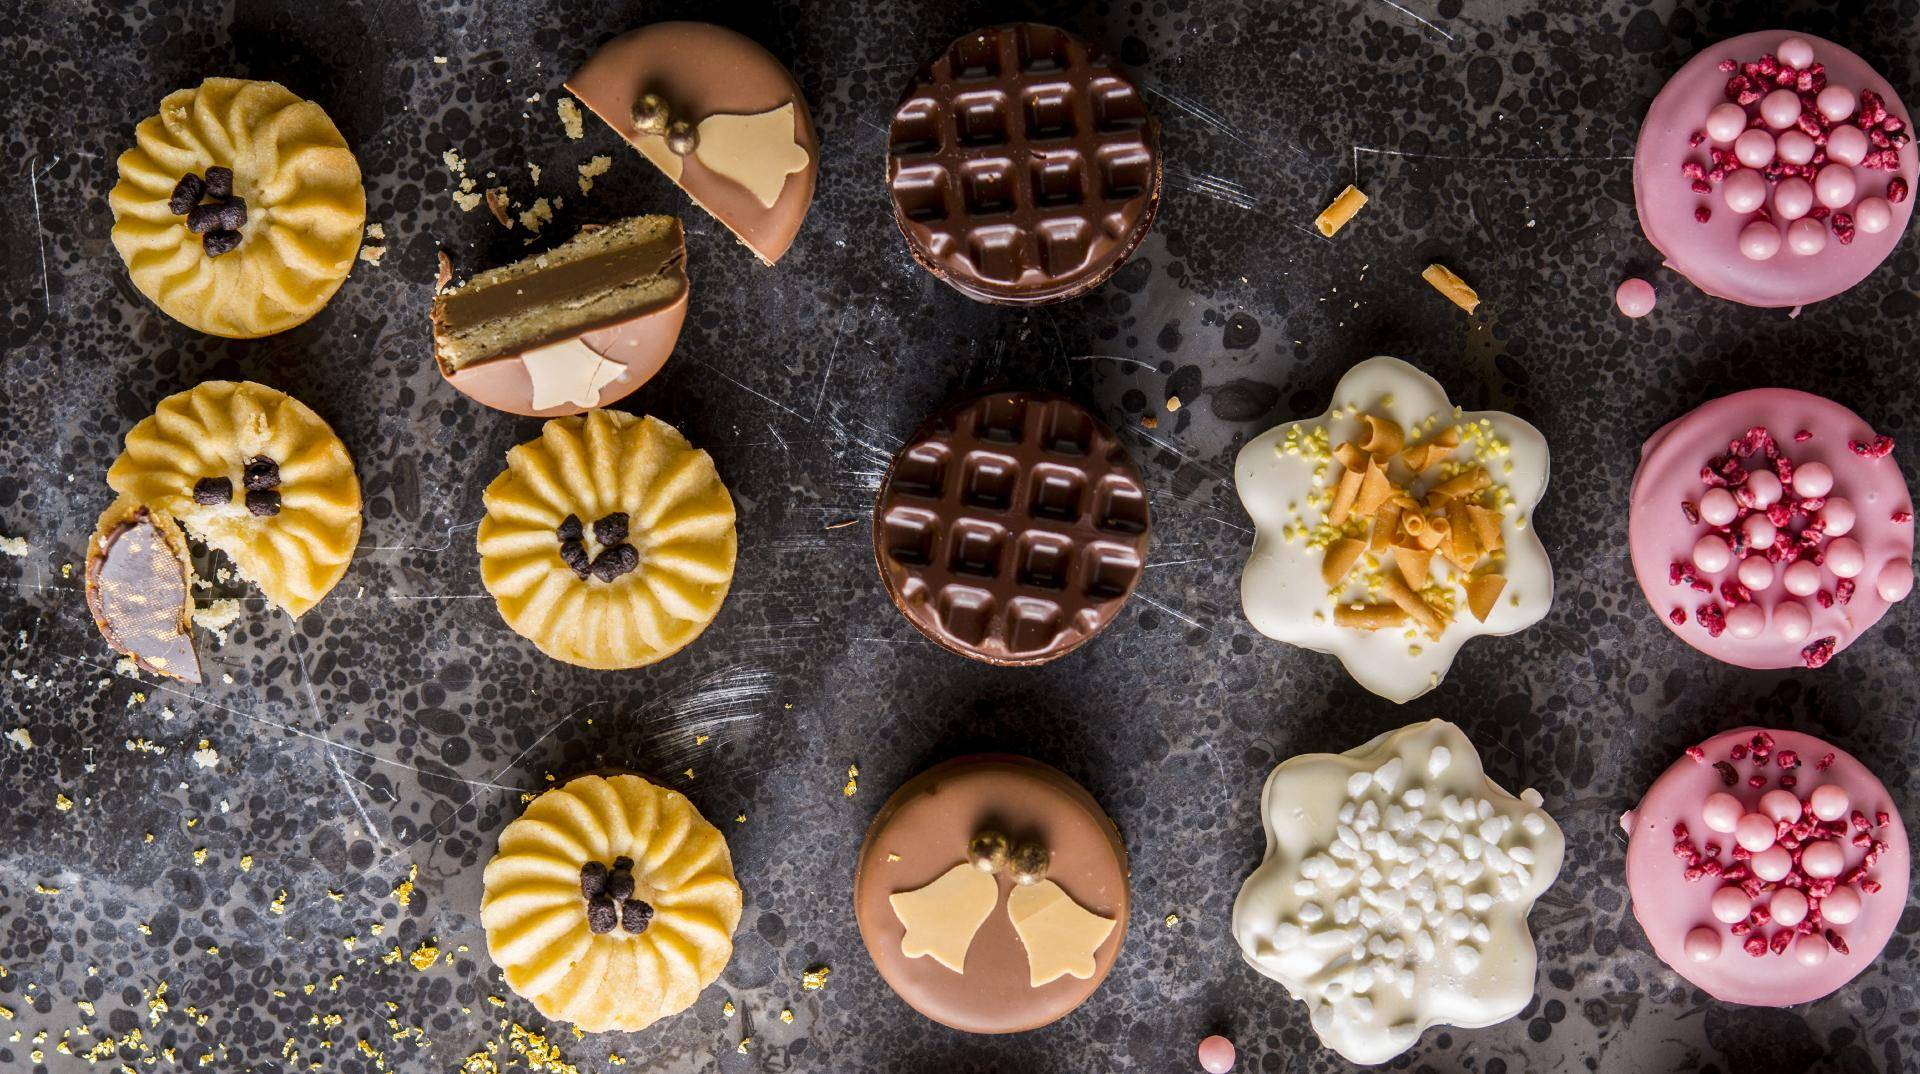 Barry Callebaut pastry creations